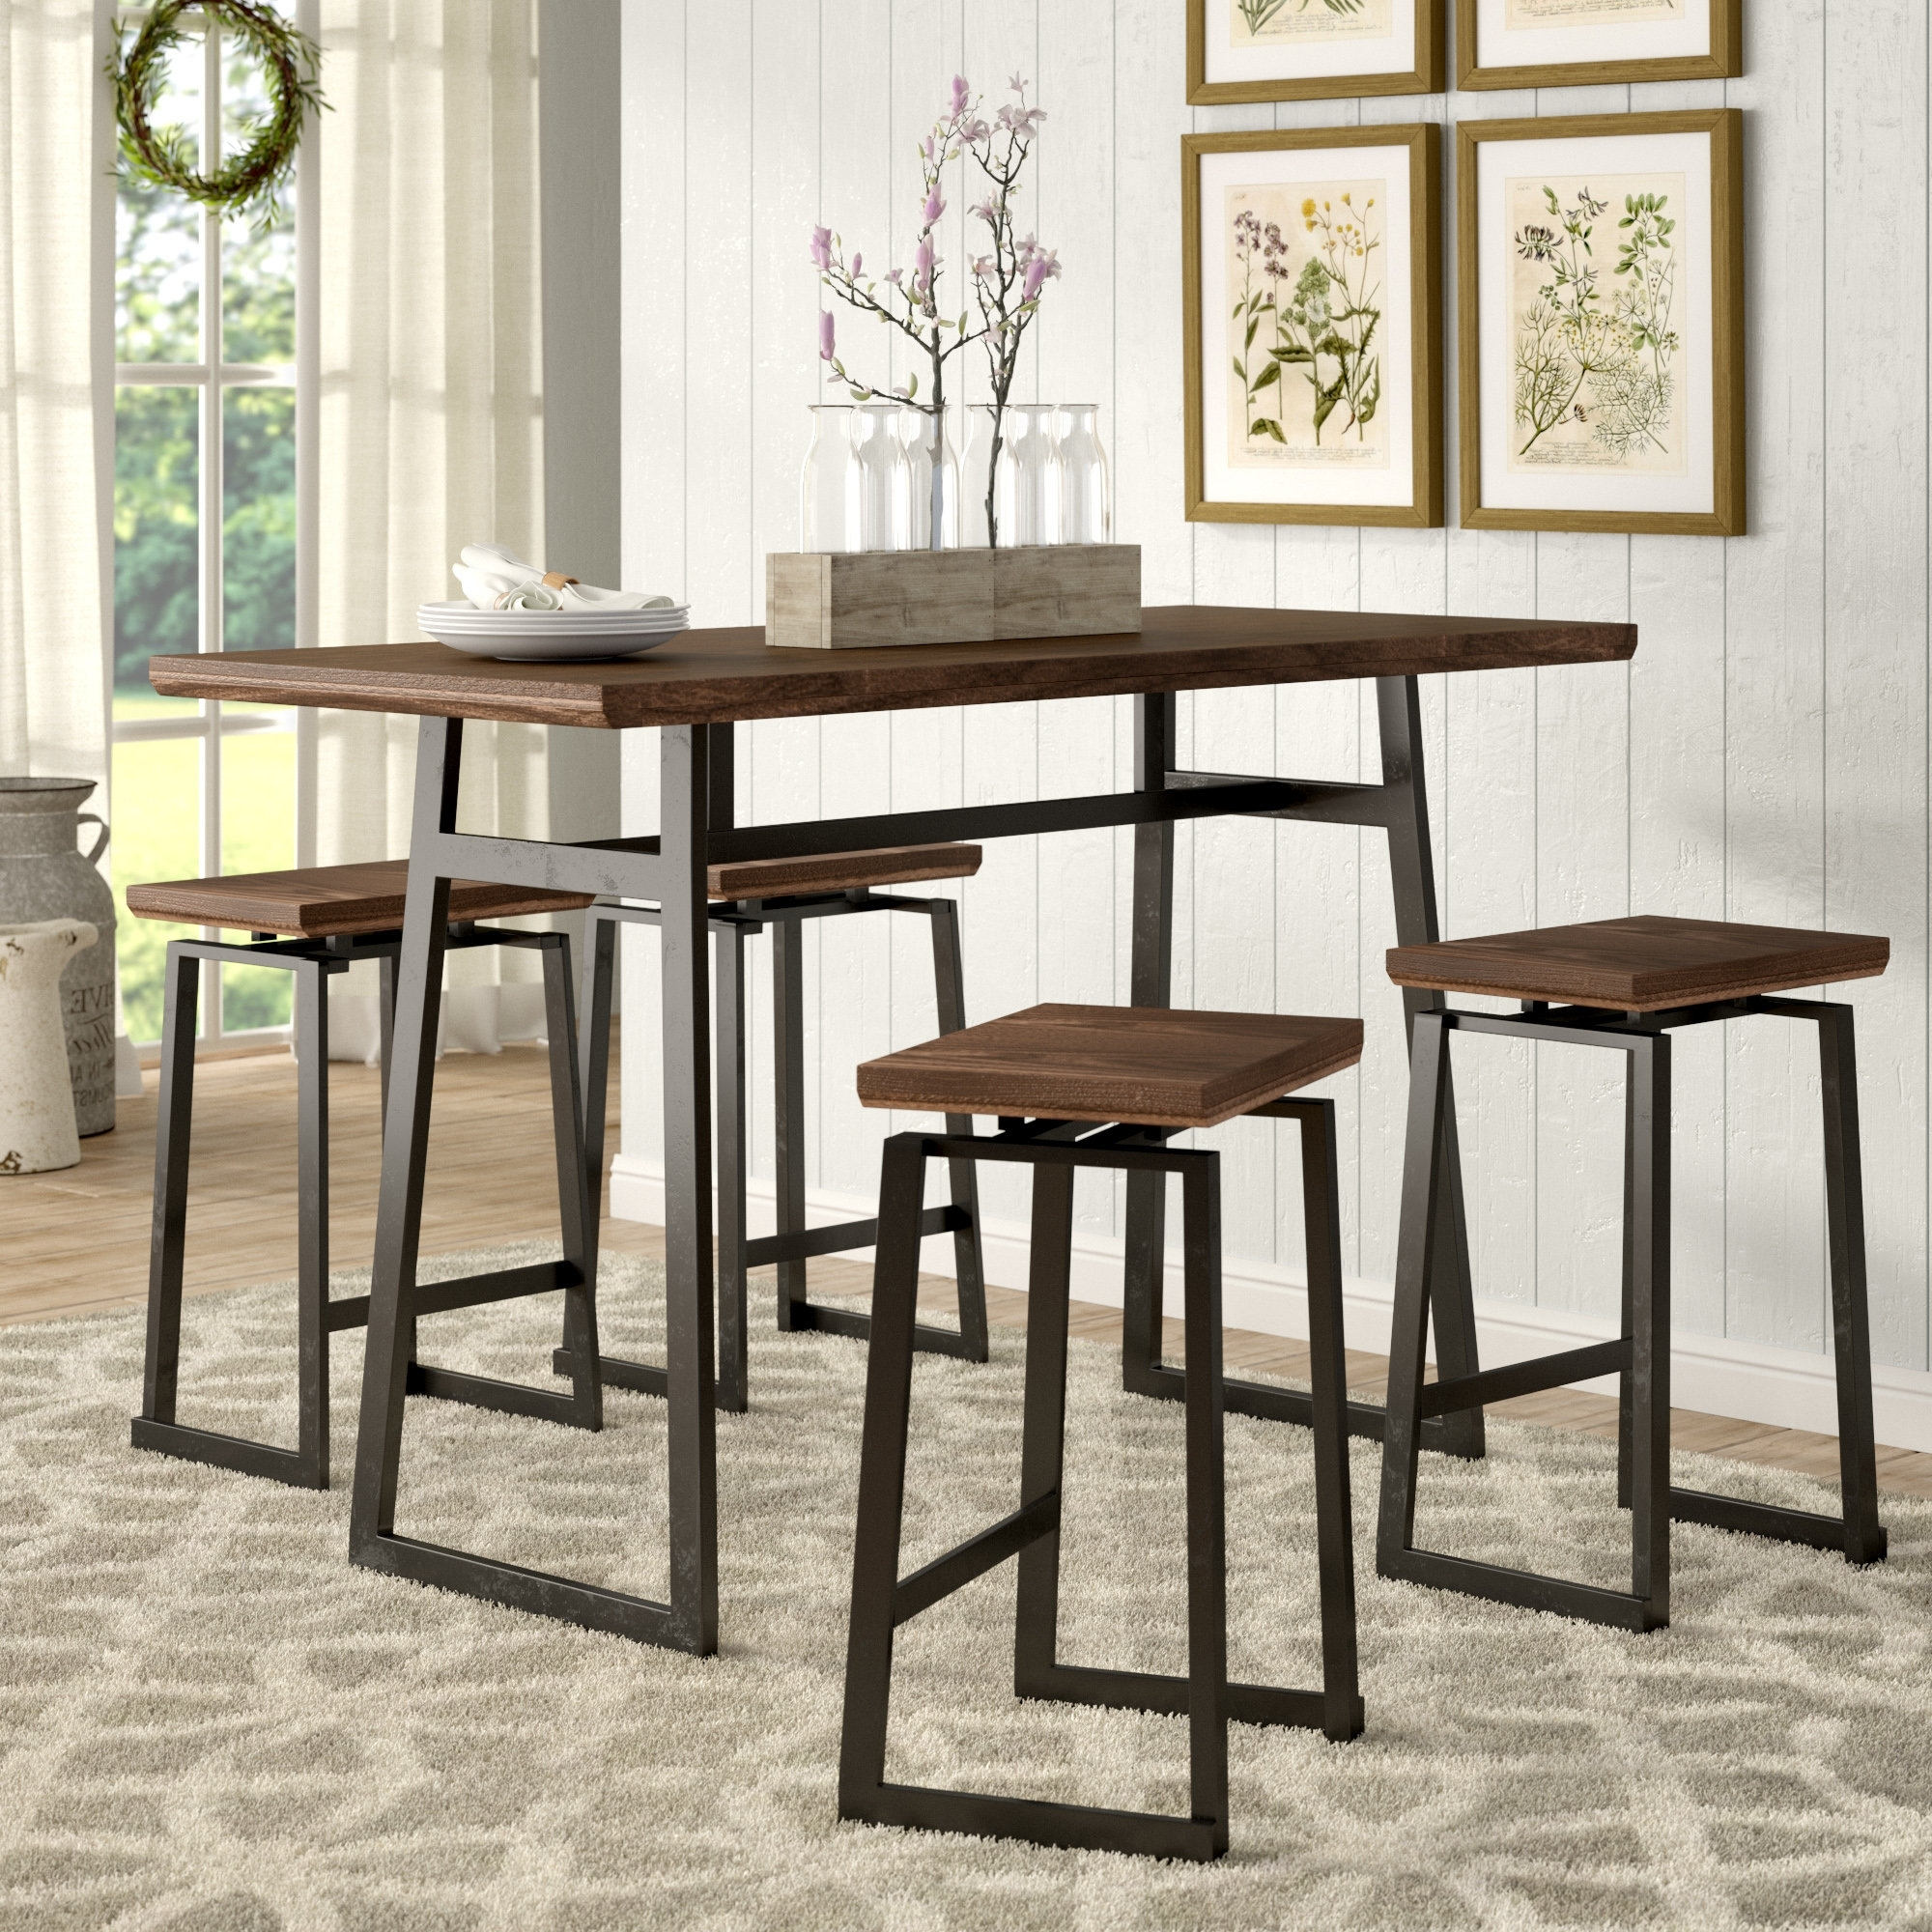 Jaxon 5 Piece Extension Counter Sets With Fabric Stools Regarding 2018 Gracie Oaks Platane Industrial 5 Piece Counter Height Dining Set (View 11 of 25)